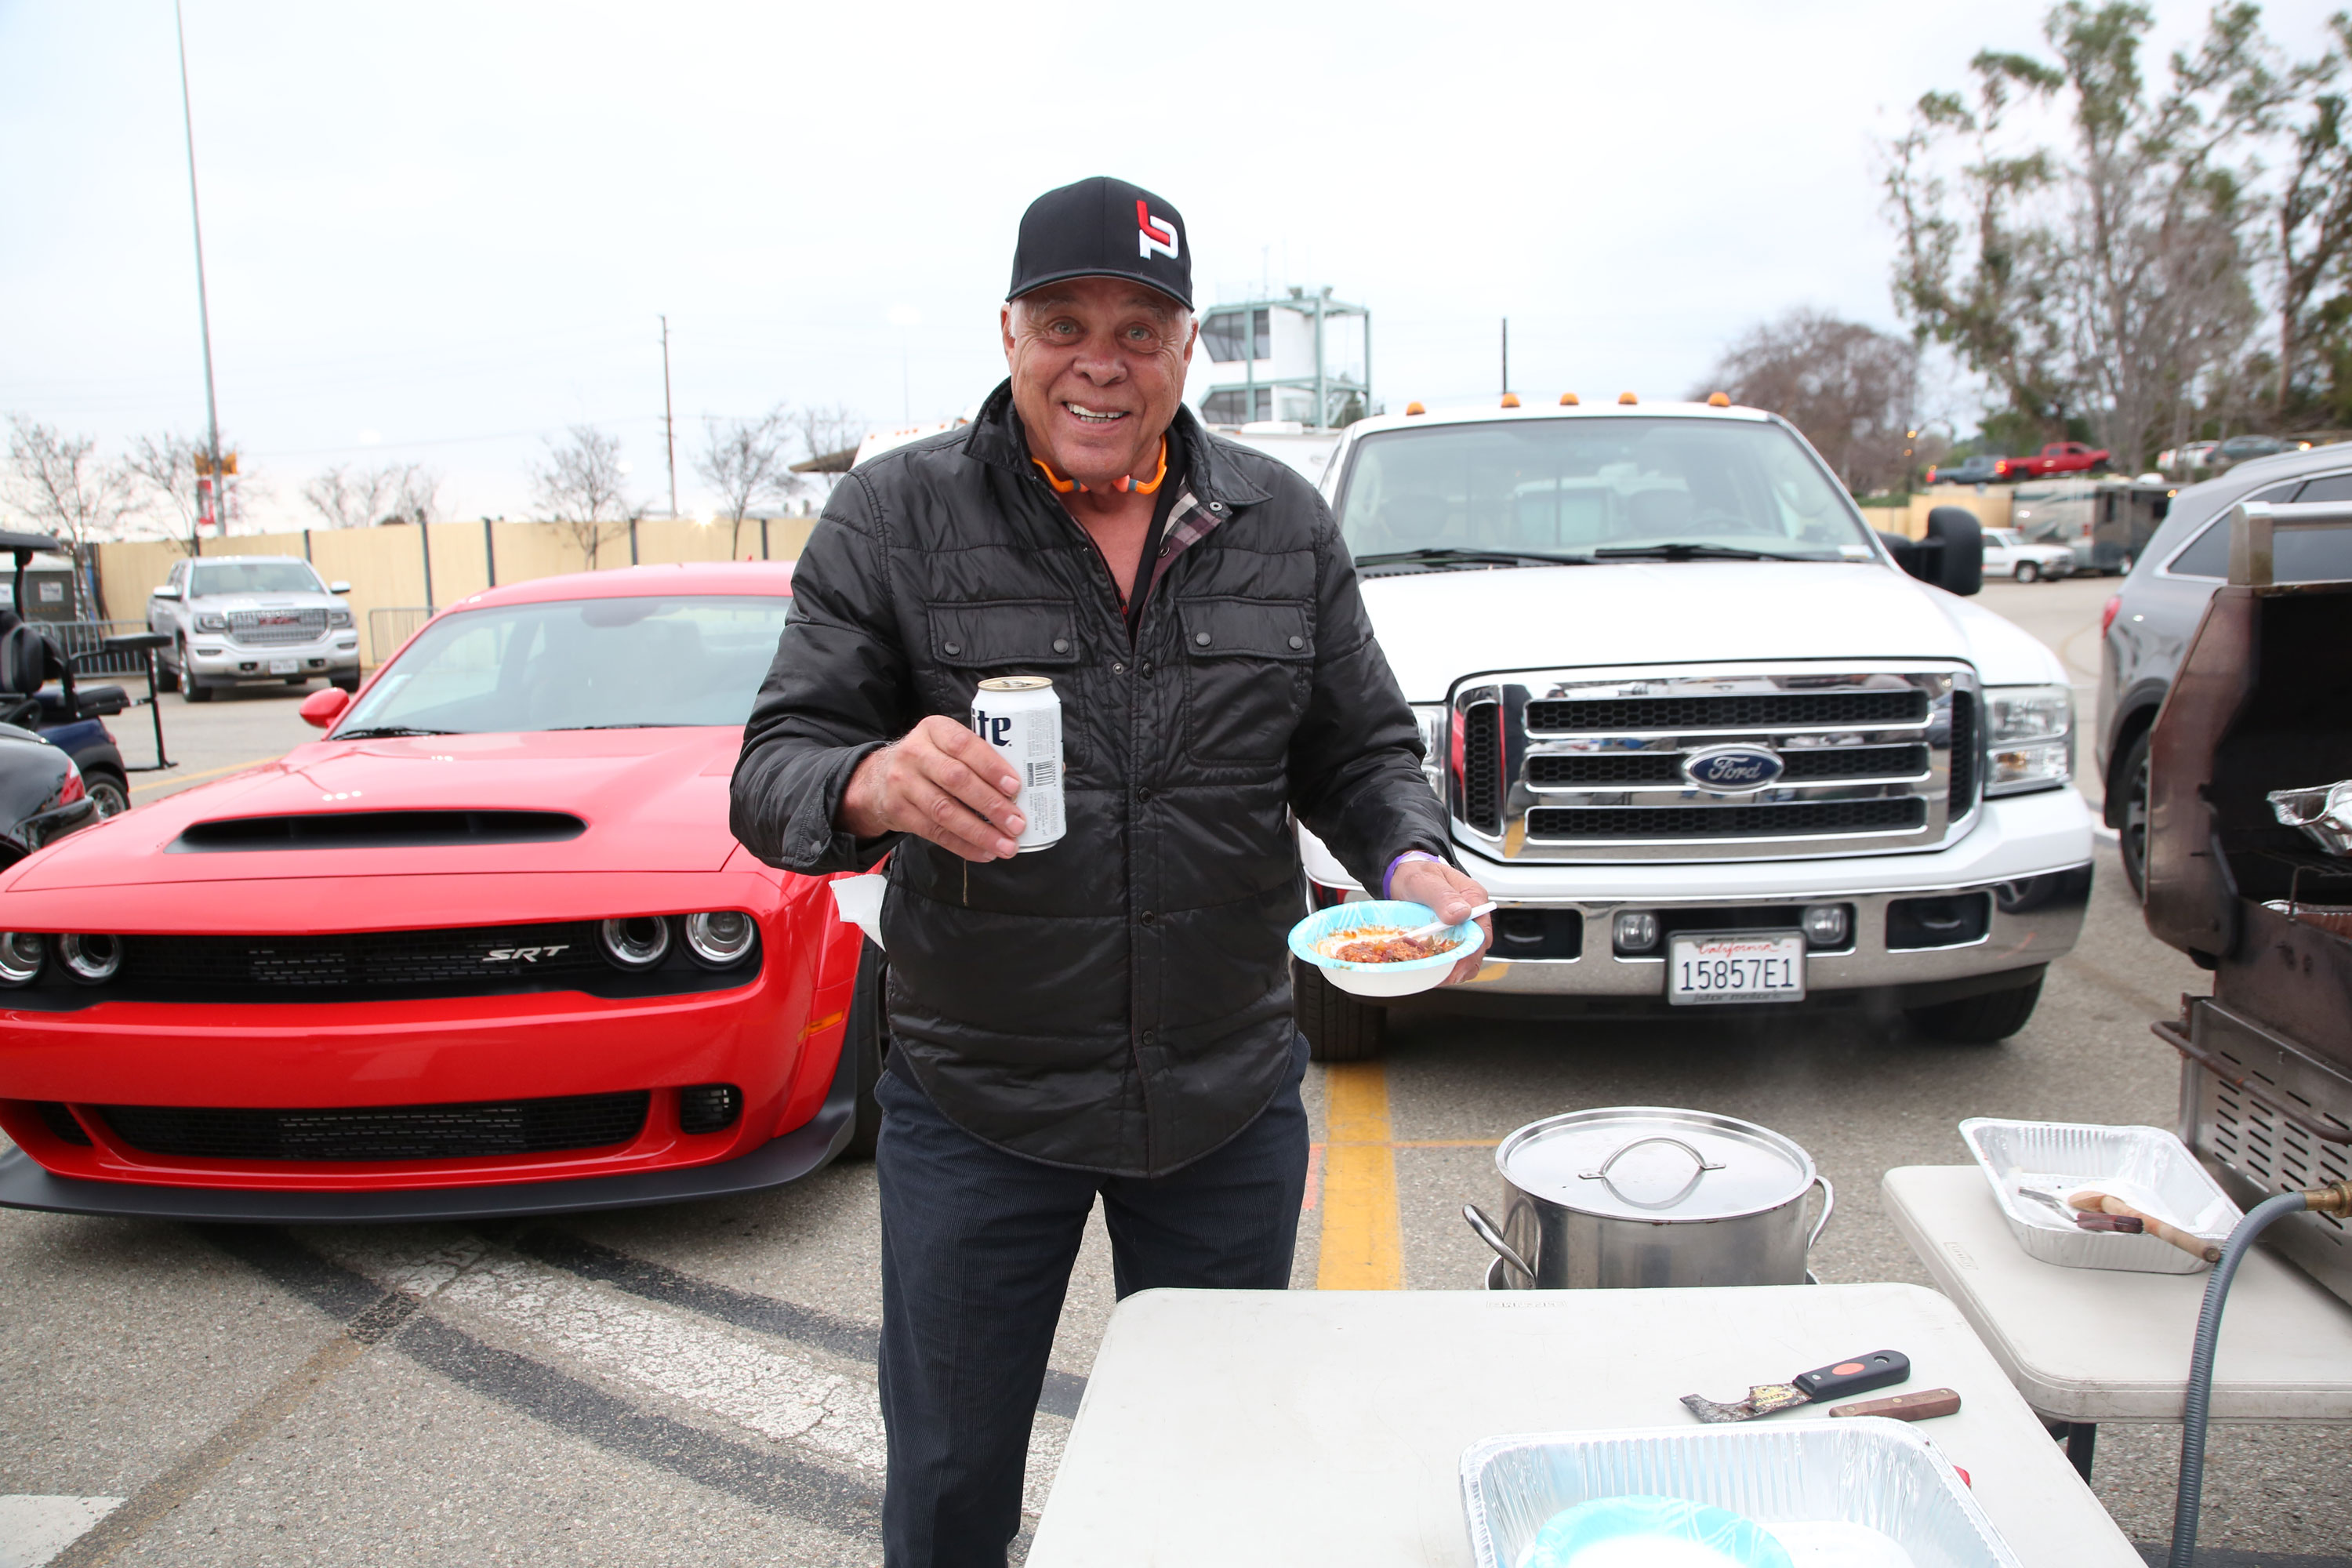 At the end of the day, bbq and beer with the tailgaters, just like any other race fan.